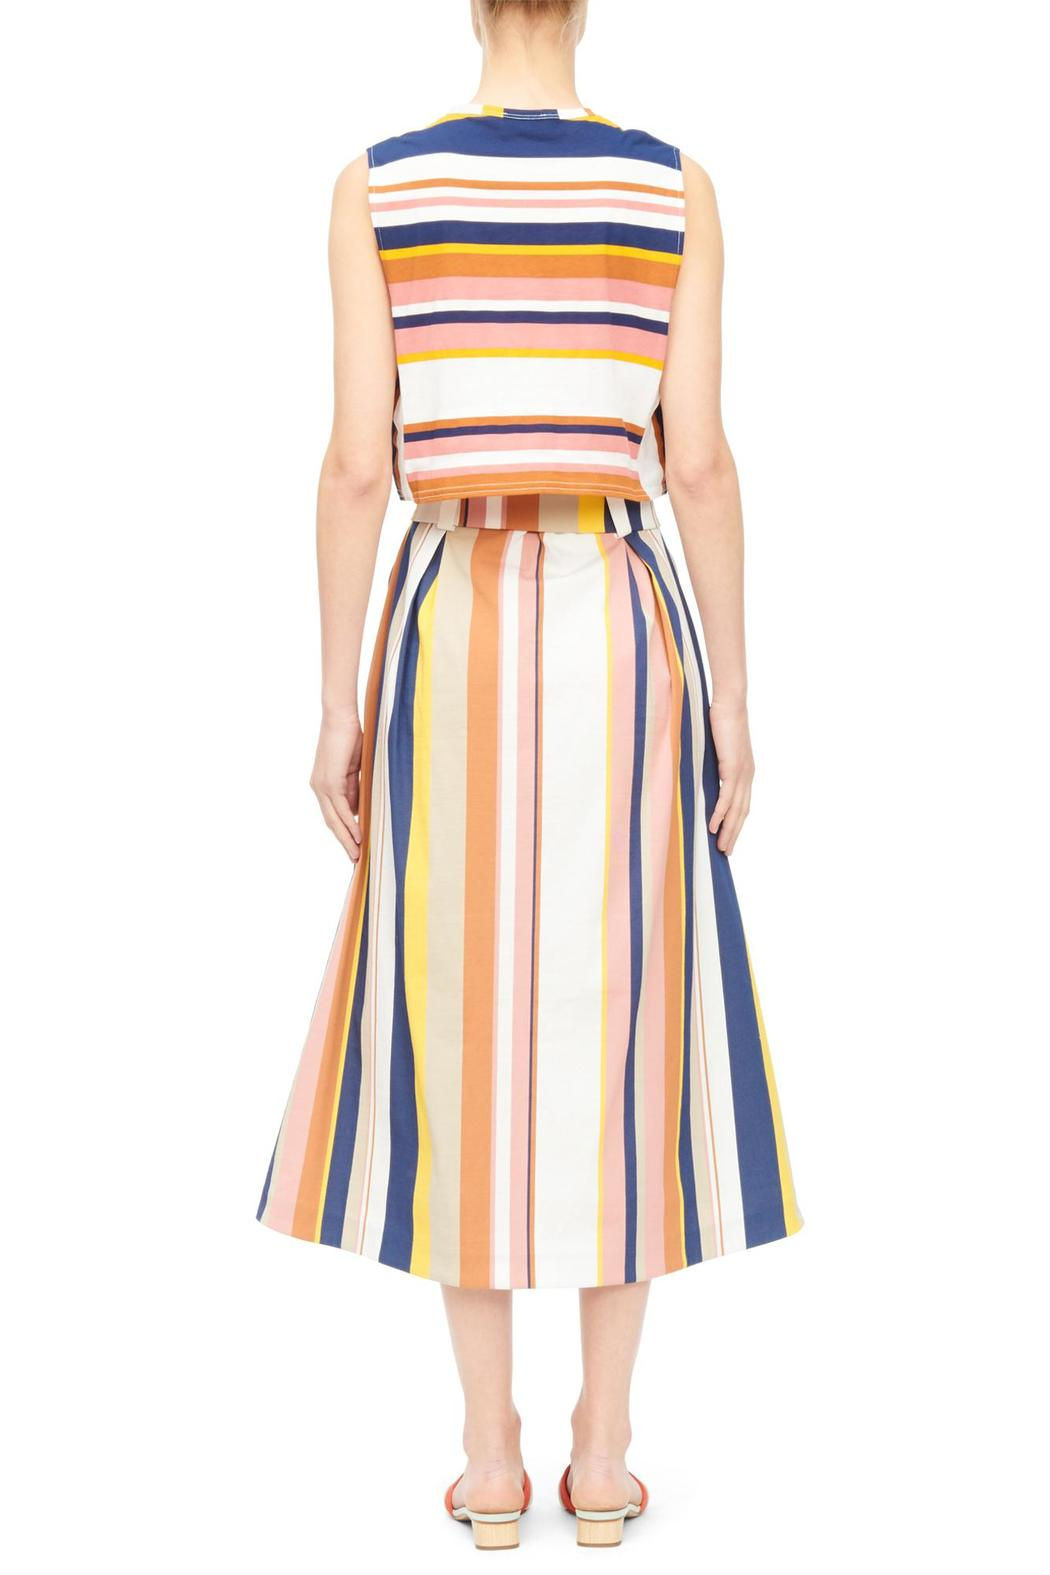 Tanya Taylor Striped Crop Top - Side Cropped Image